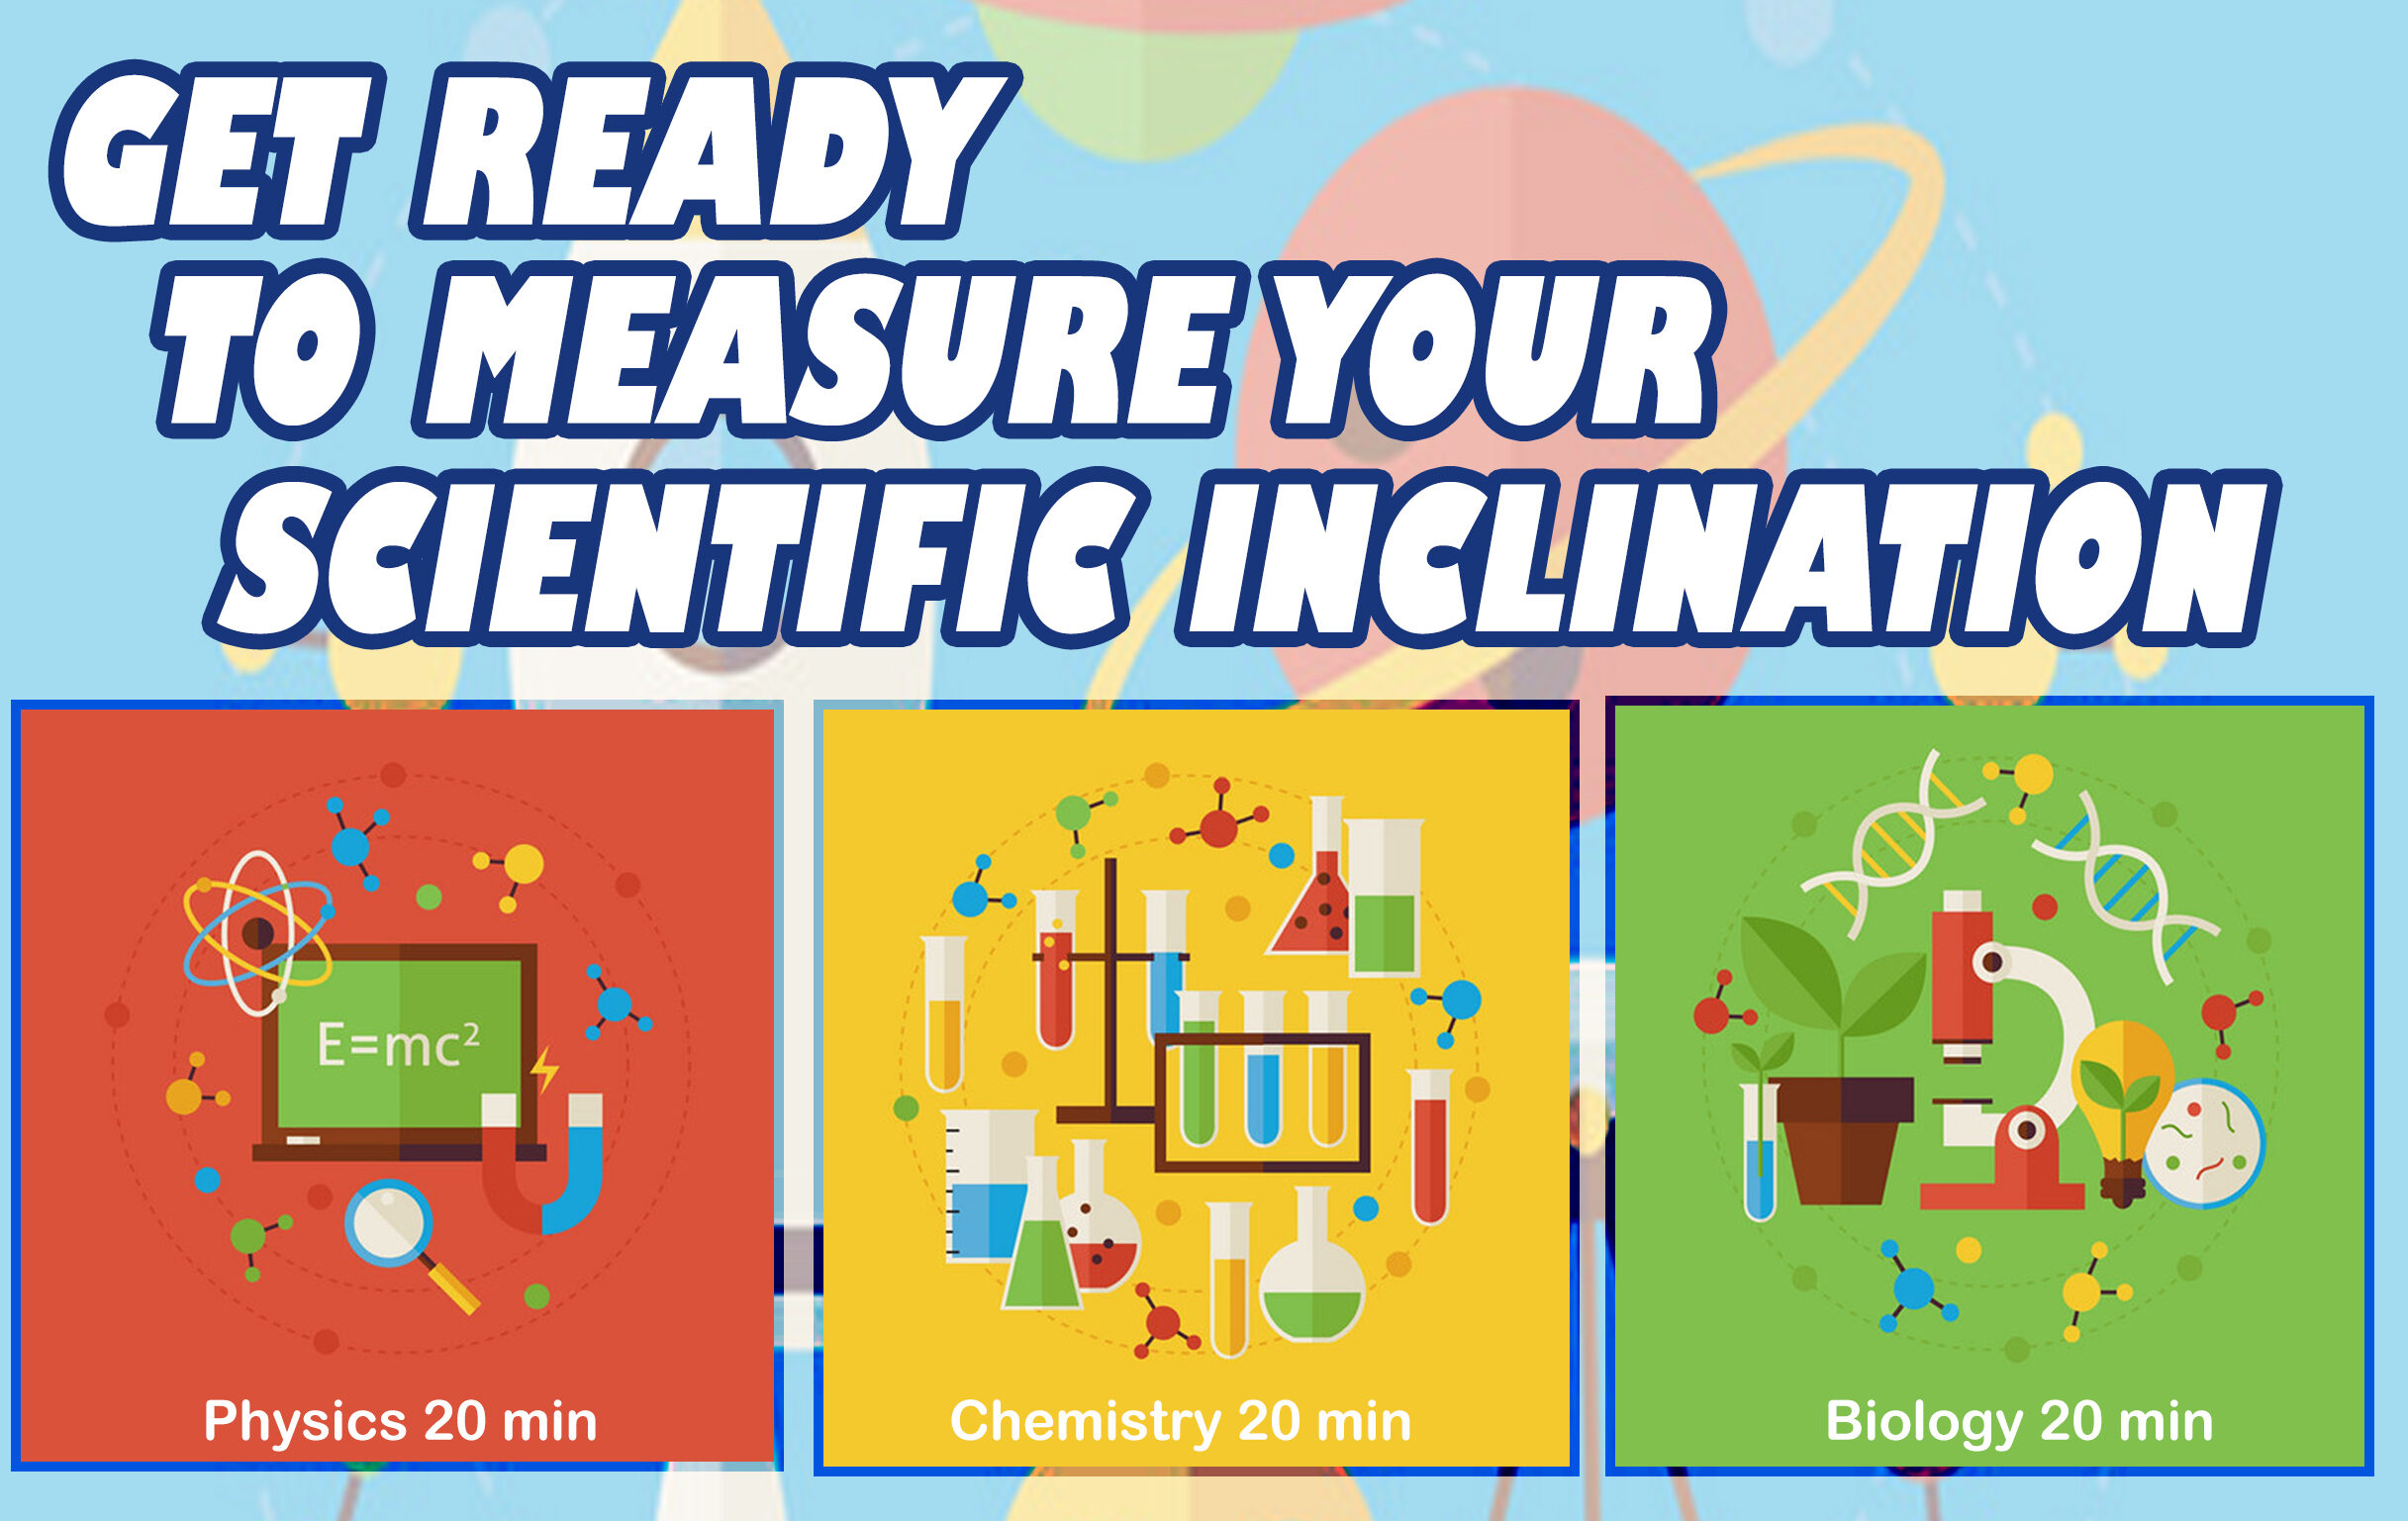 Get ready to measure your Scientific Inclination